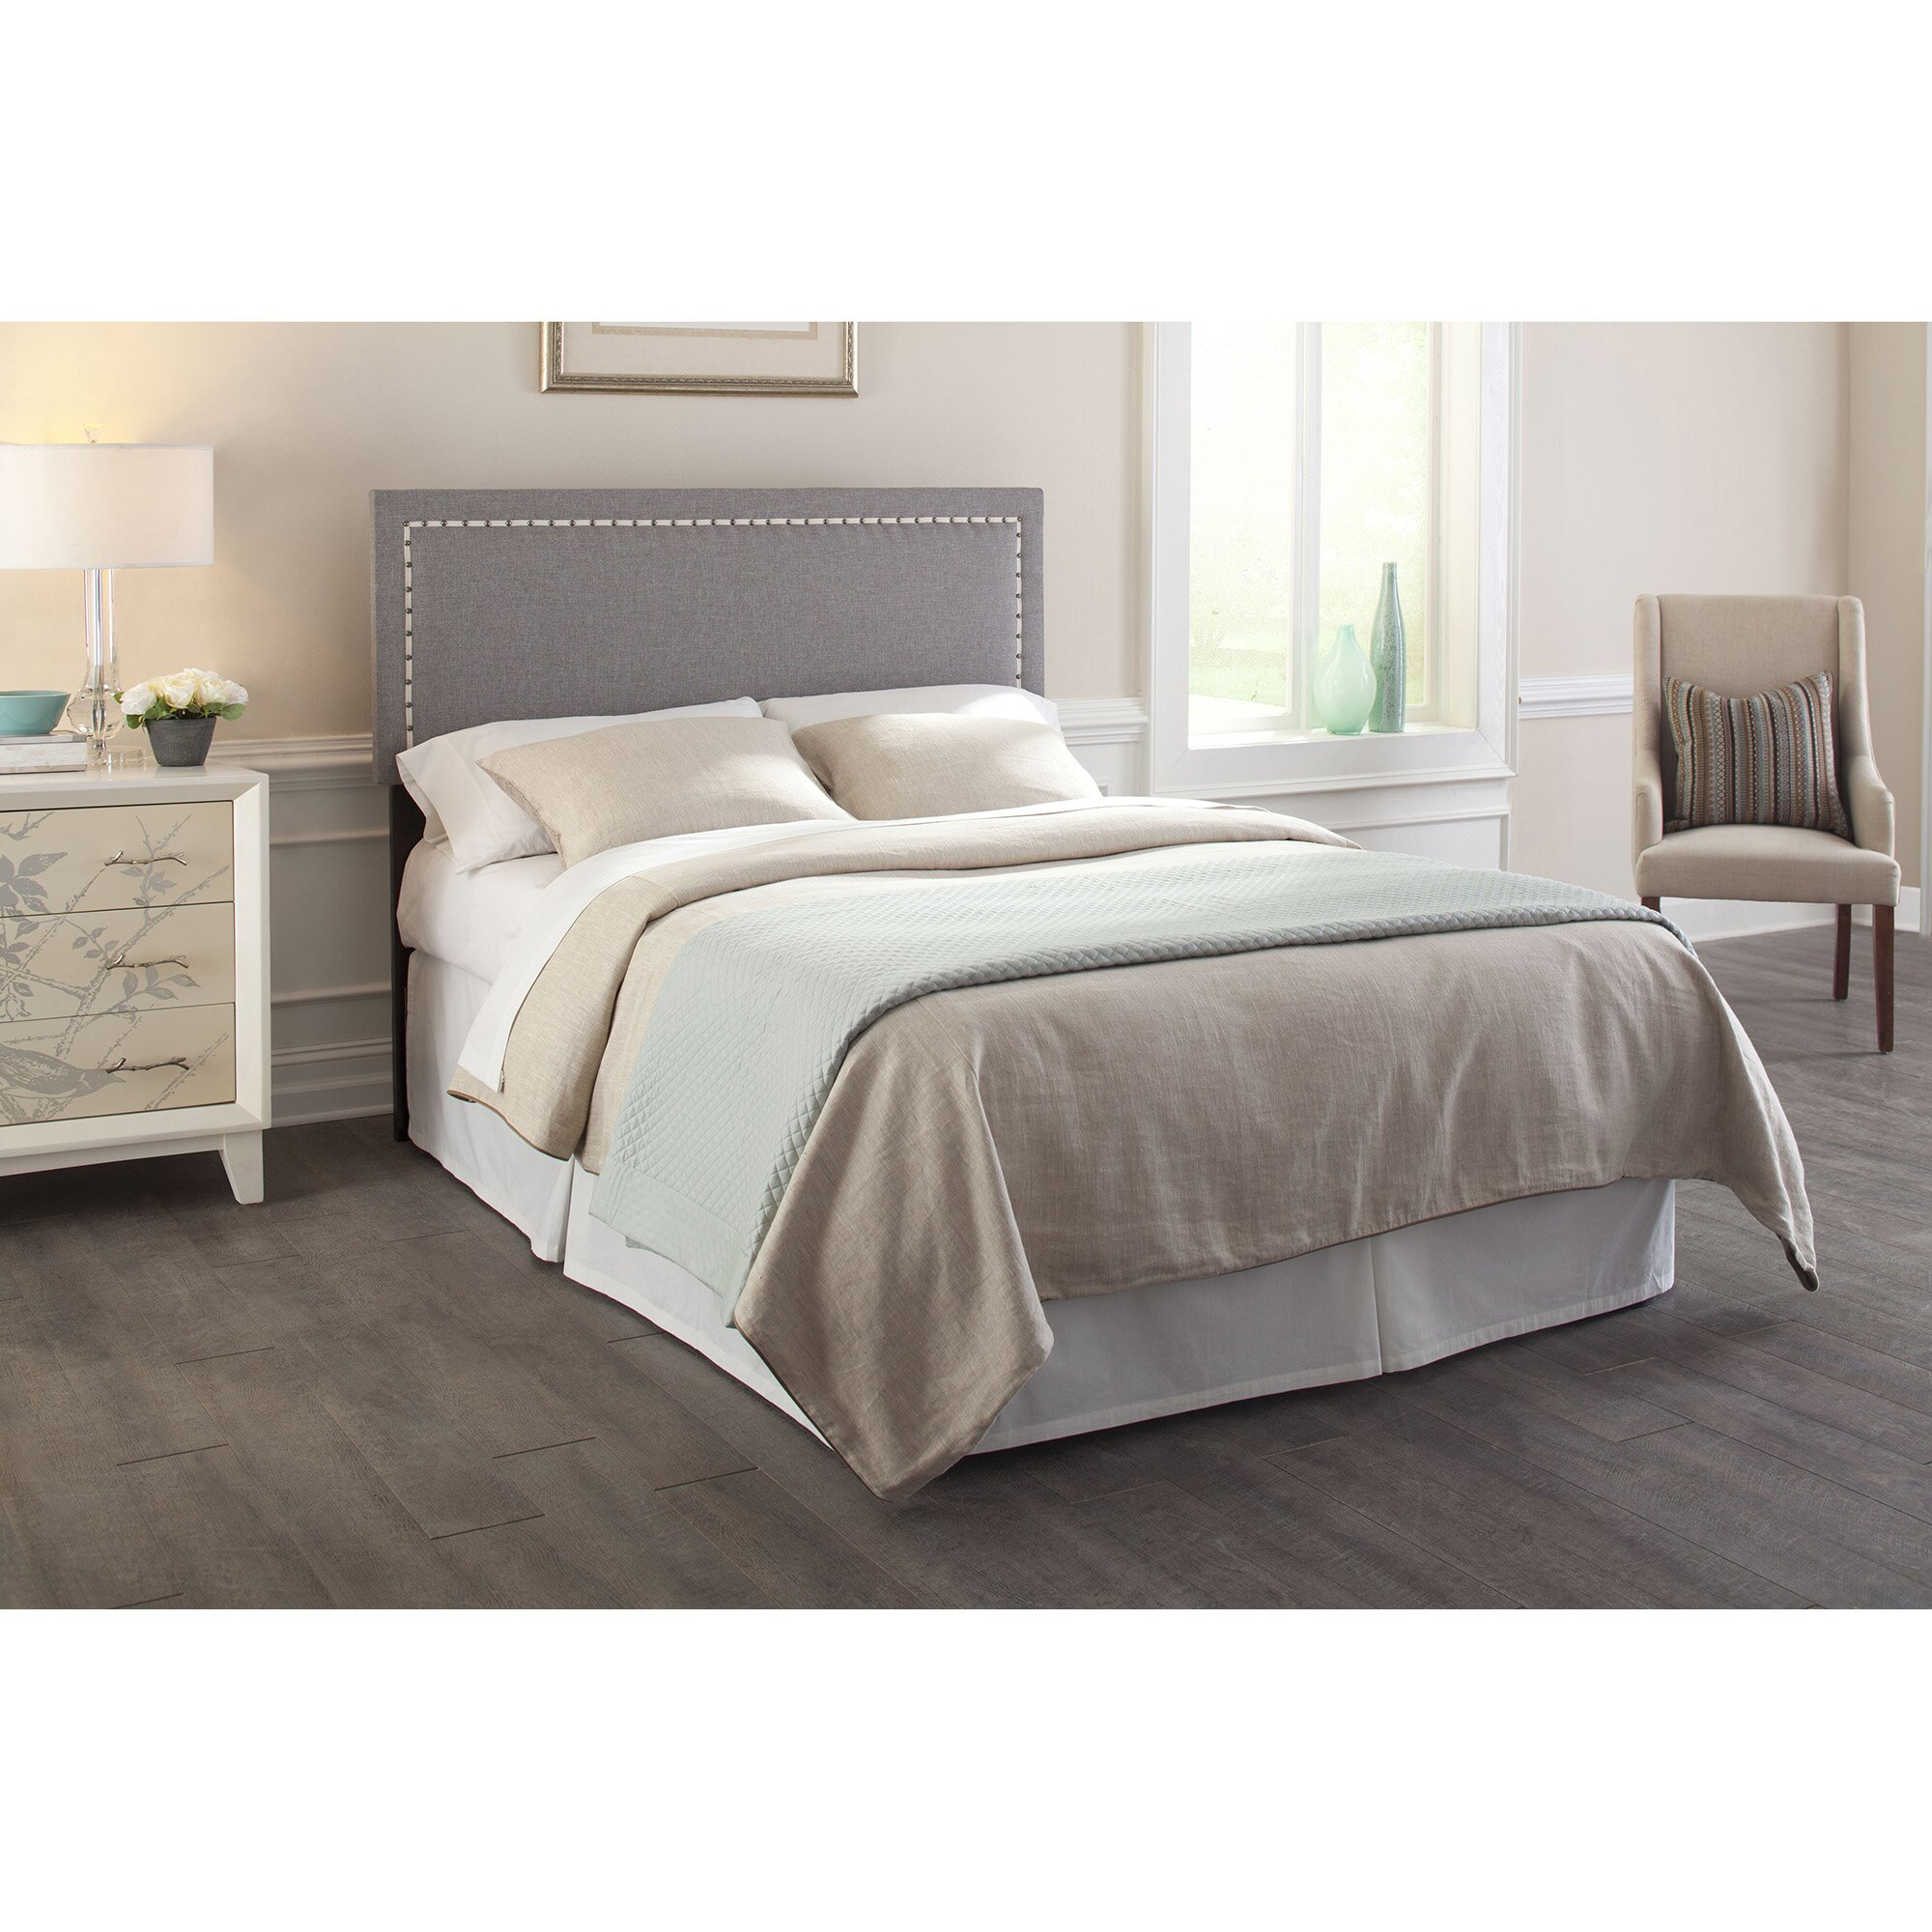 Upholstered Headboard Nailhead: Fashion Bed Group Wellford Nailhead Trim Upholstered